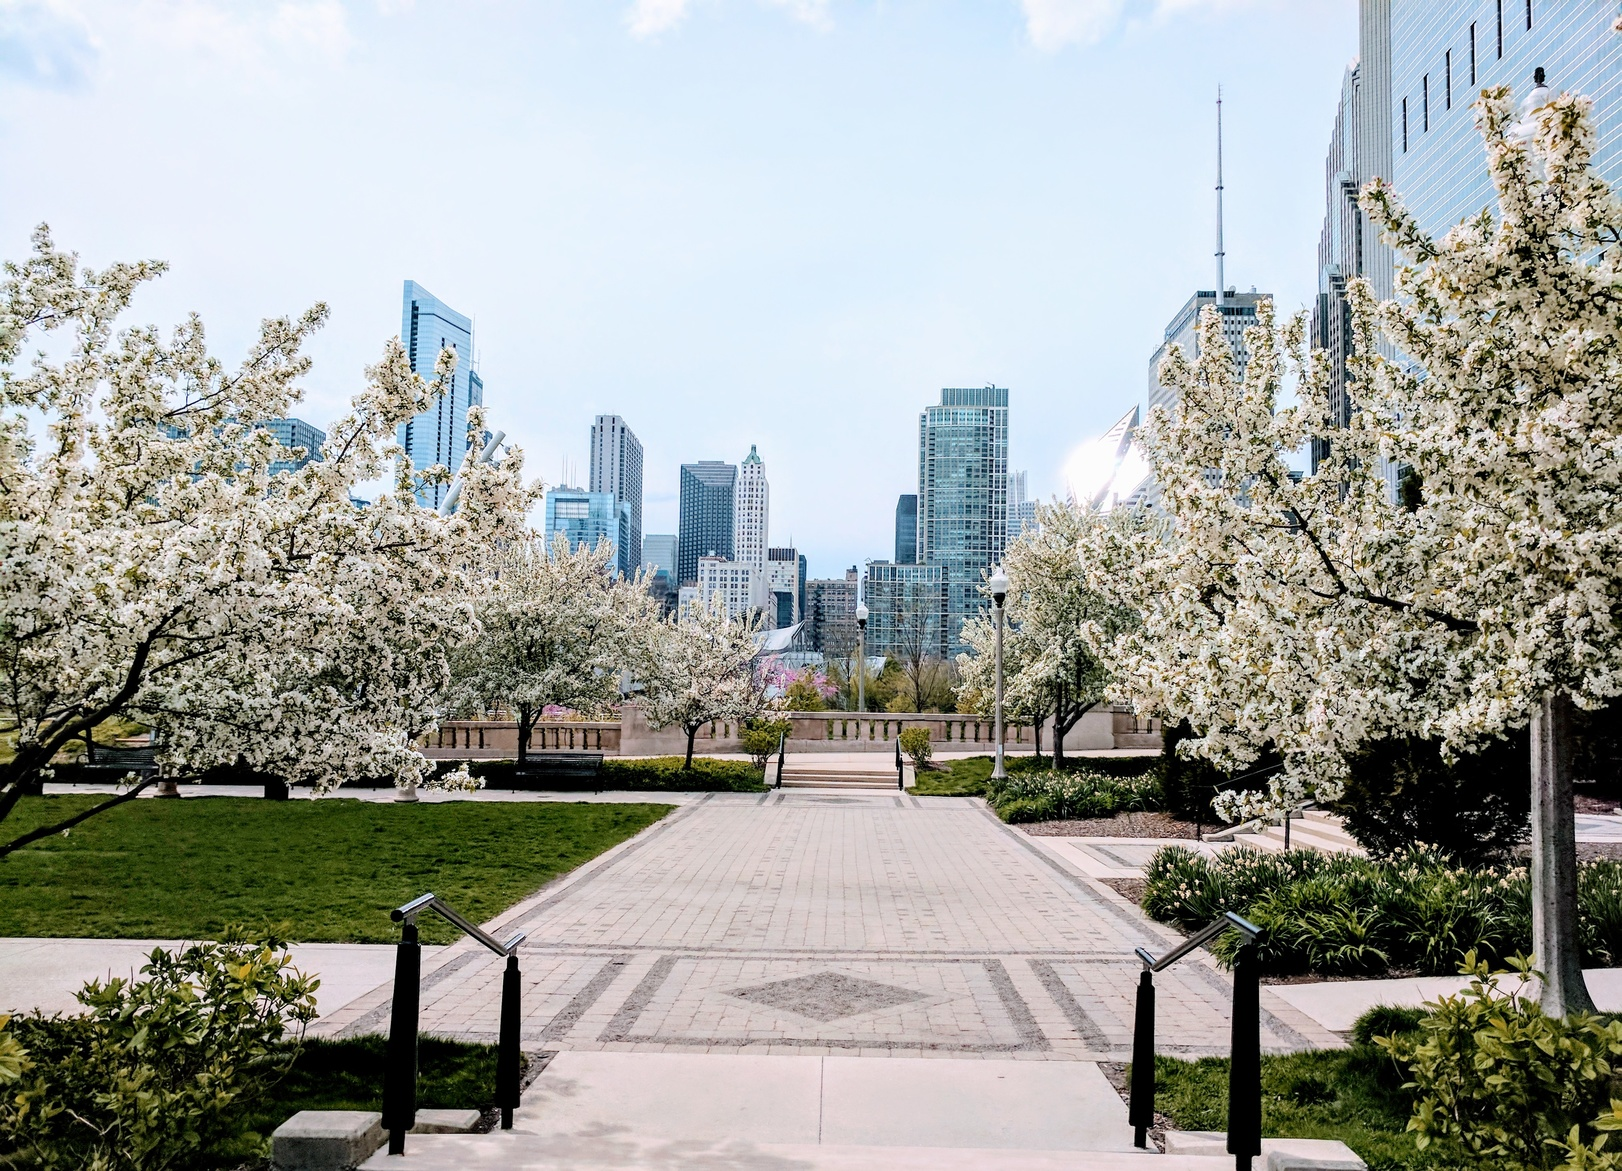 Types of flowering trees you will see this spring in the chicago types of flowering trees you will see this spring in the chicago area hendricksen tree care services izmirmasajfo